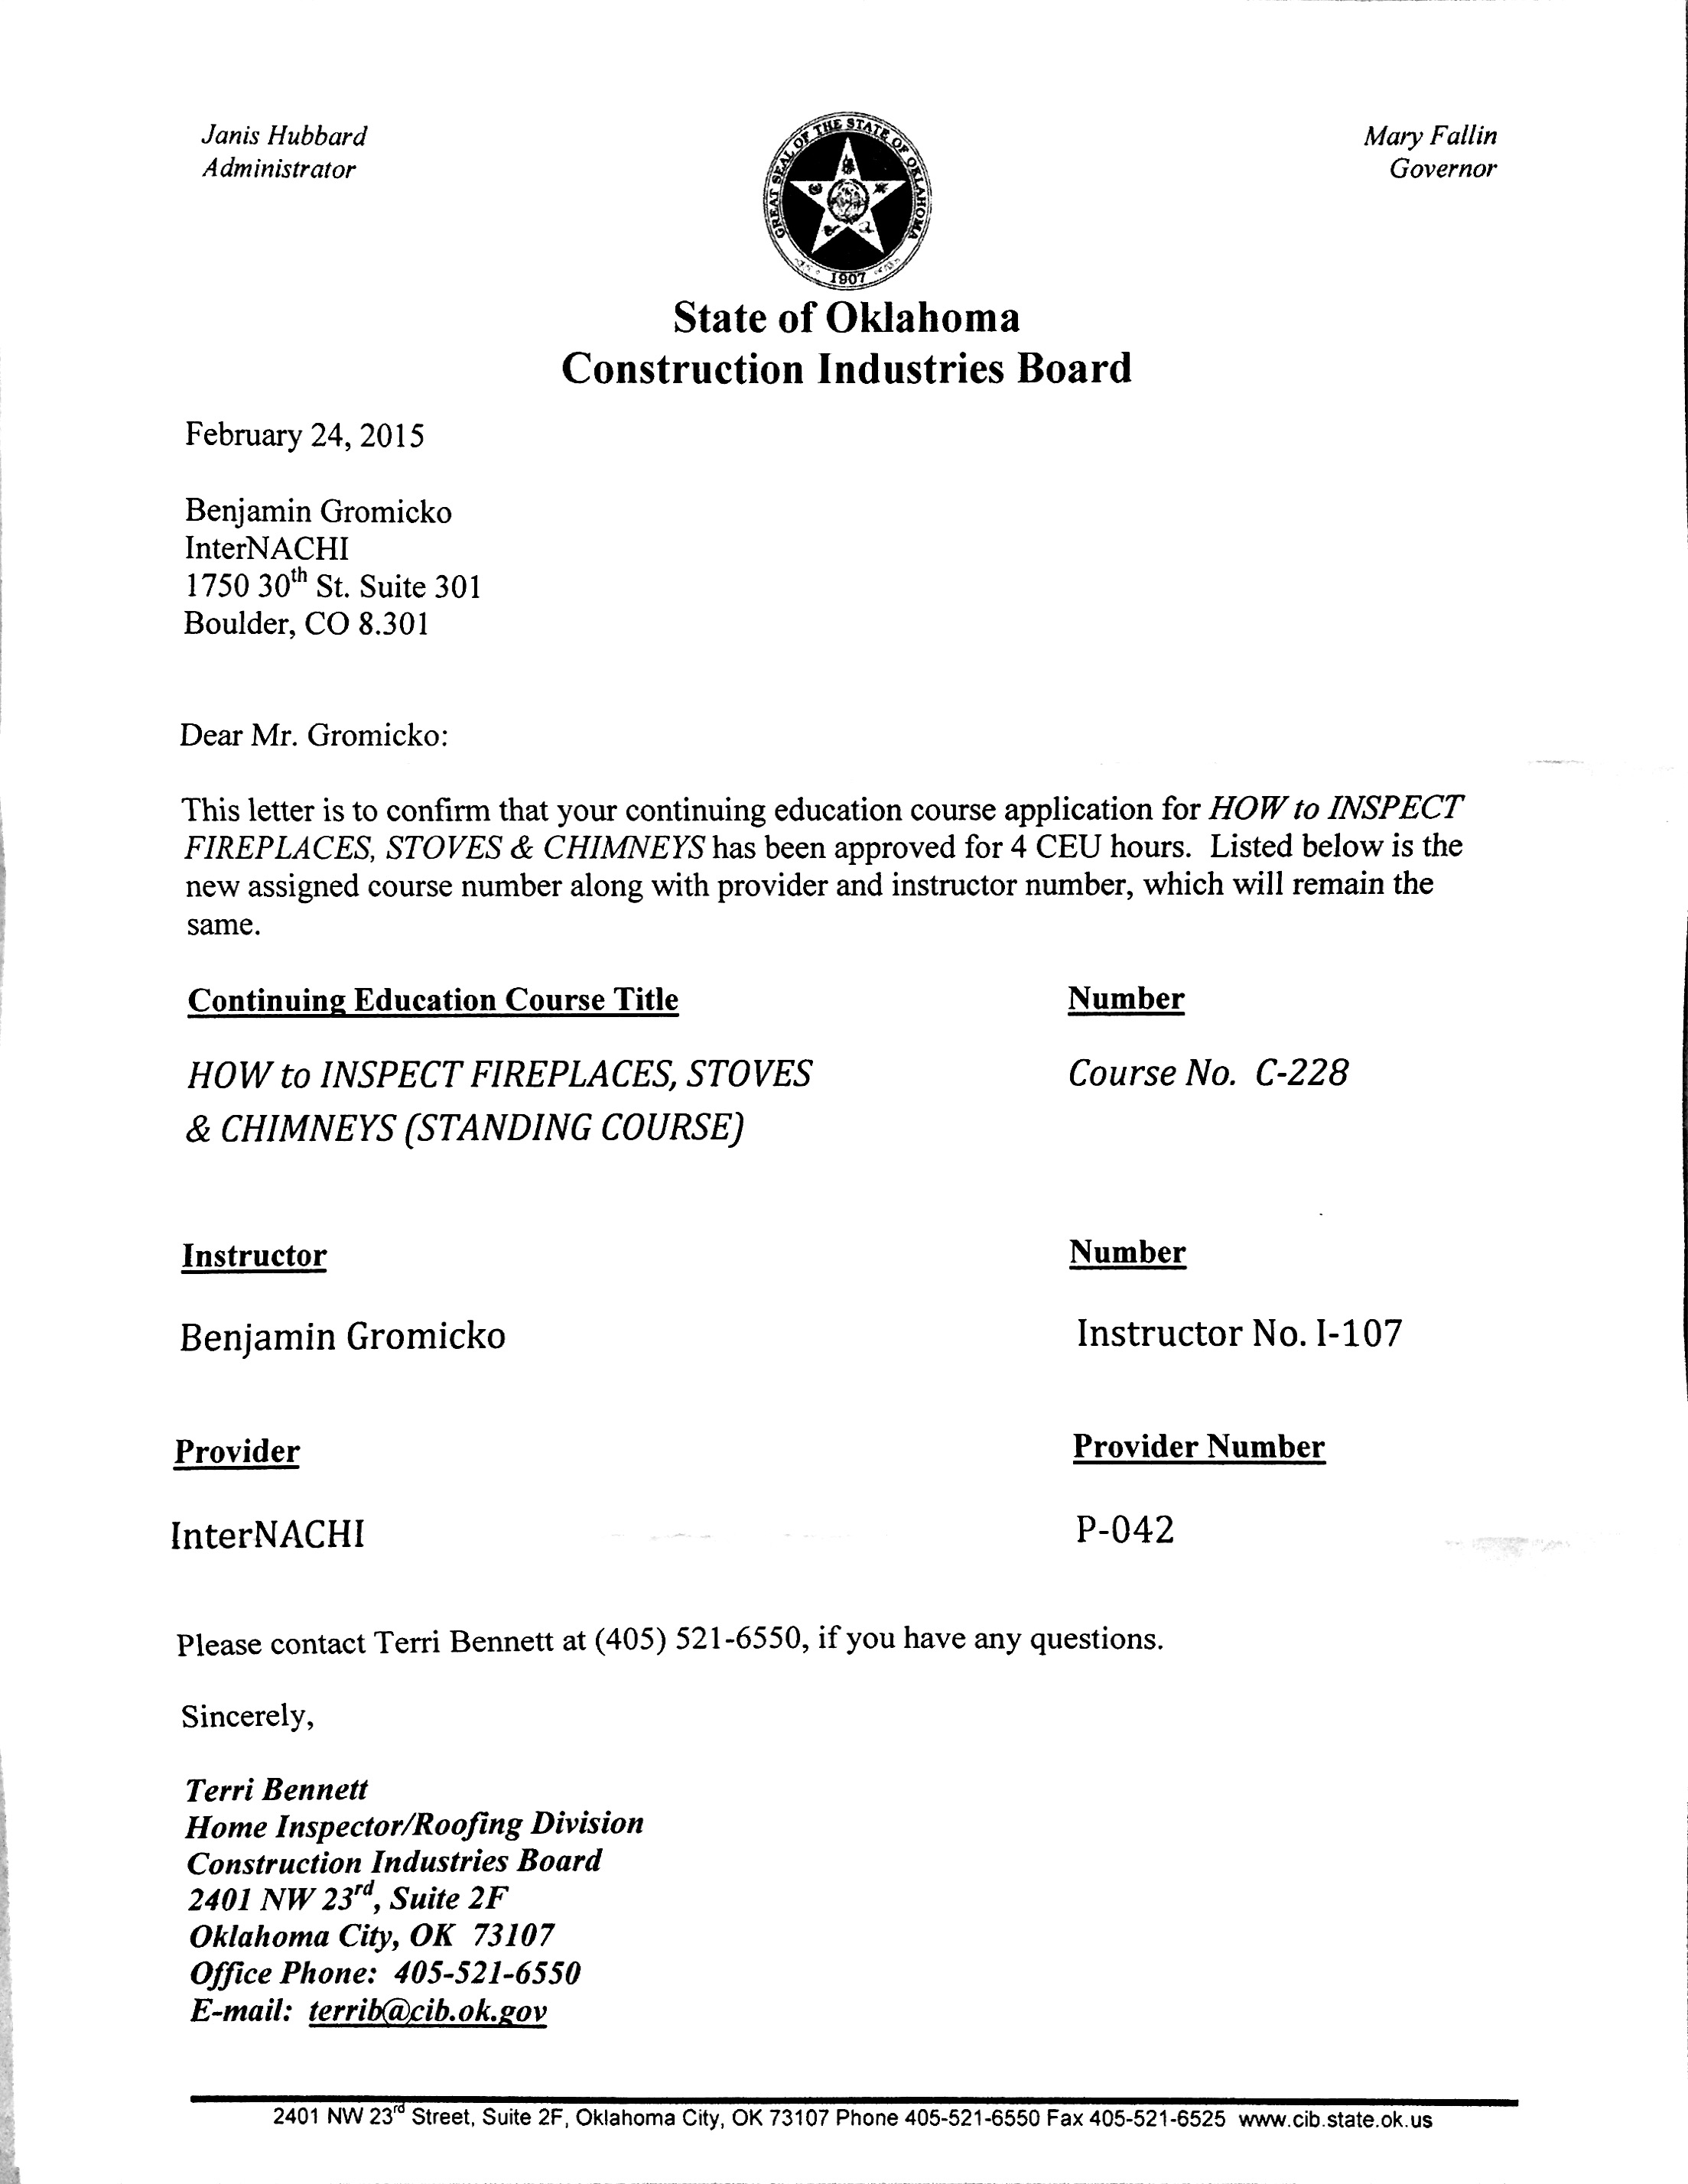 How to become a certified home inspector in oklahoma internachi enlarge approval letter for the how to inspect fireplaces stoves chimneys course 1betcityfo Gallery